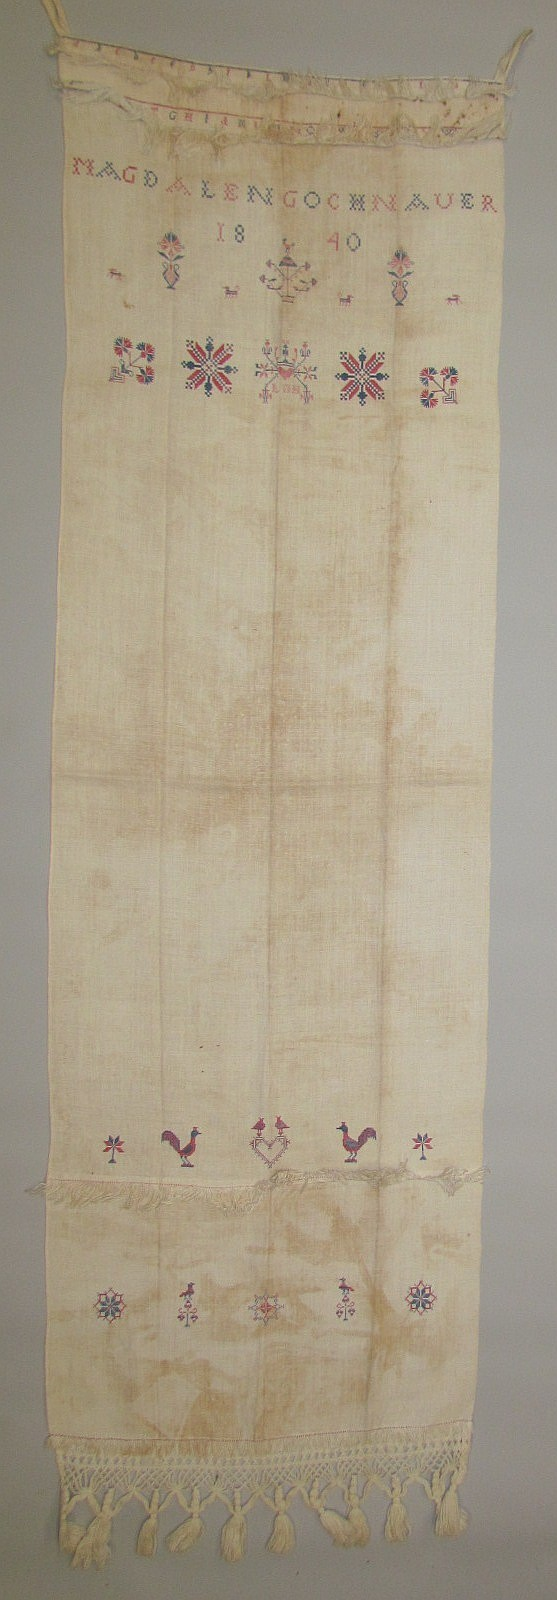 "Decorated towel ""MAGDALEN GOCHNAUER 1840"""